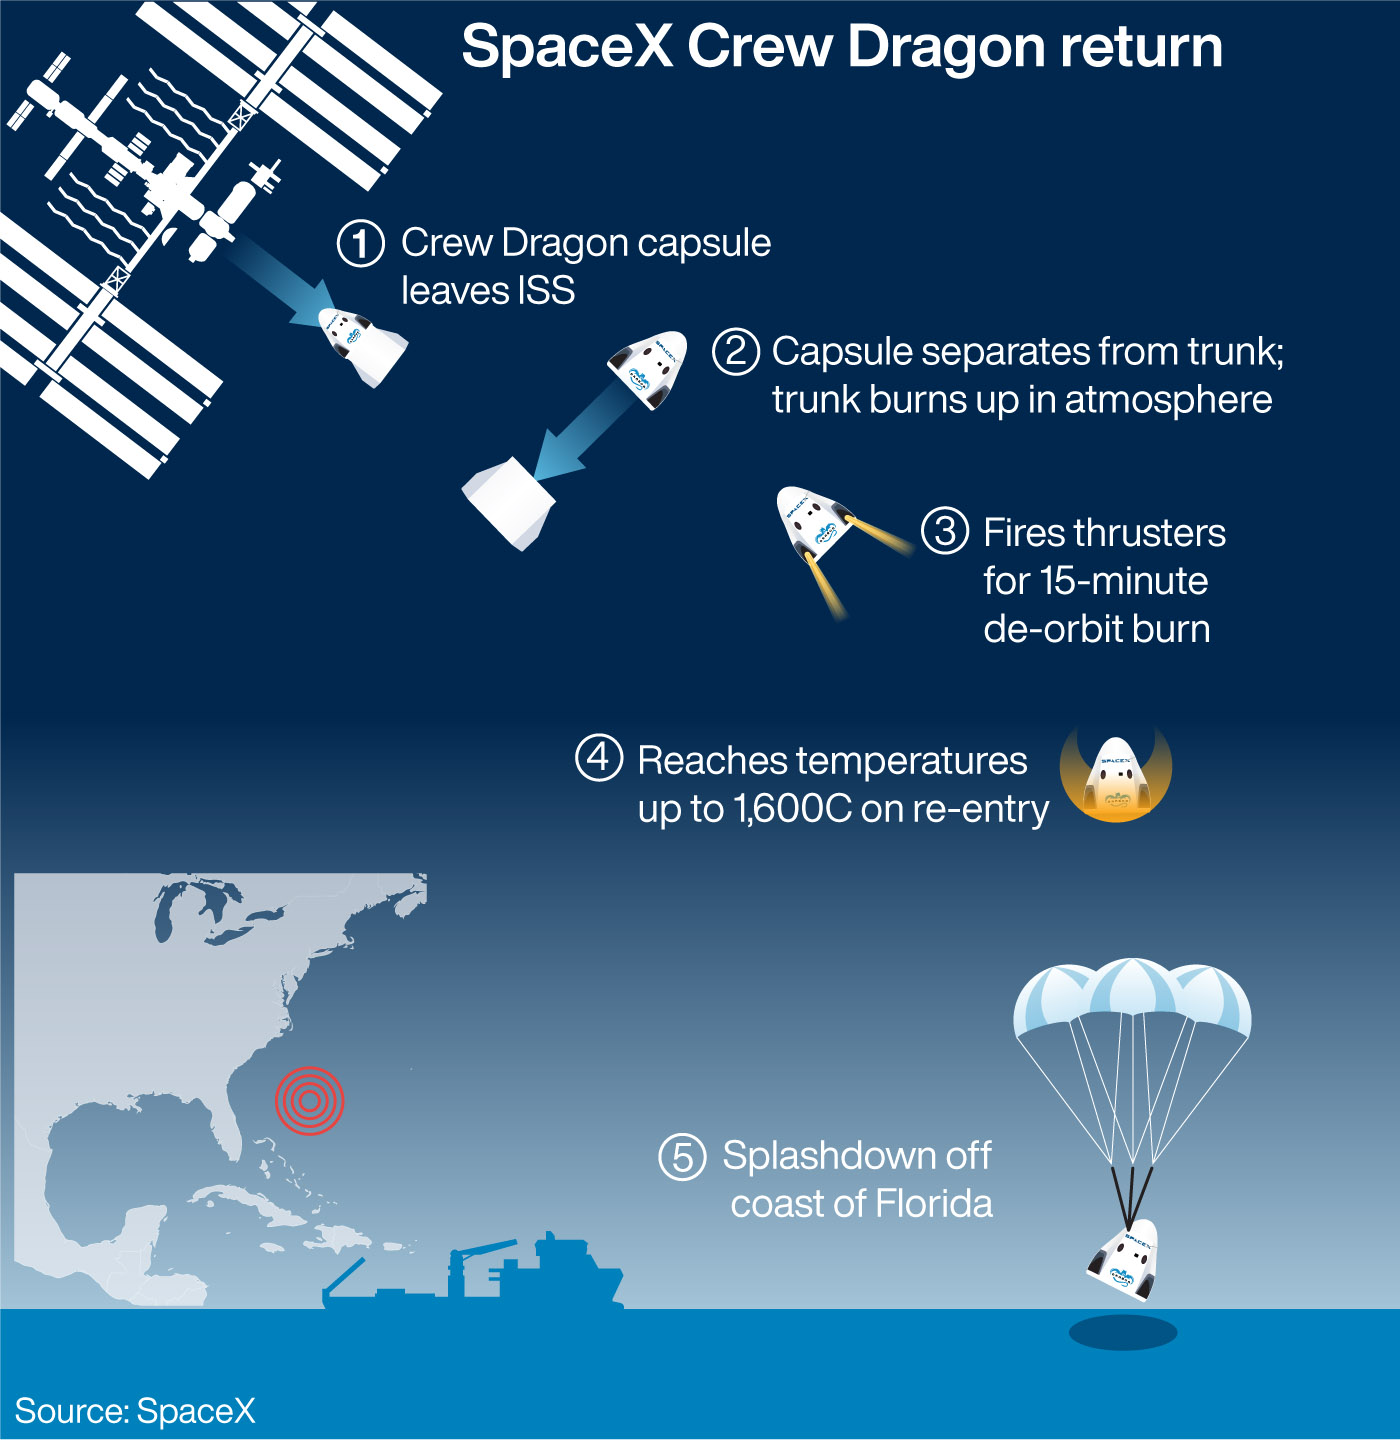 The re-entry of SpaceX's Crew Dragon capsule